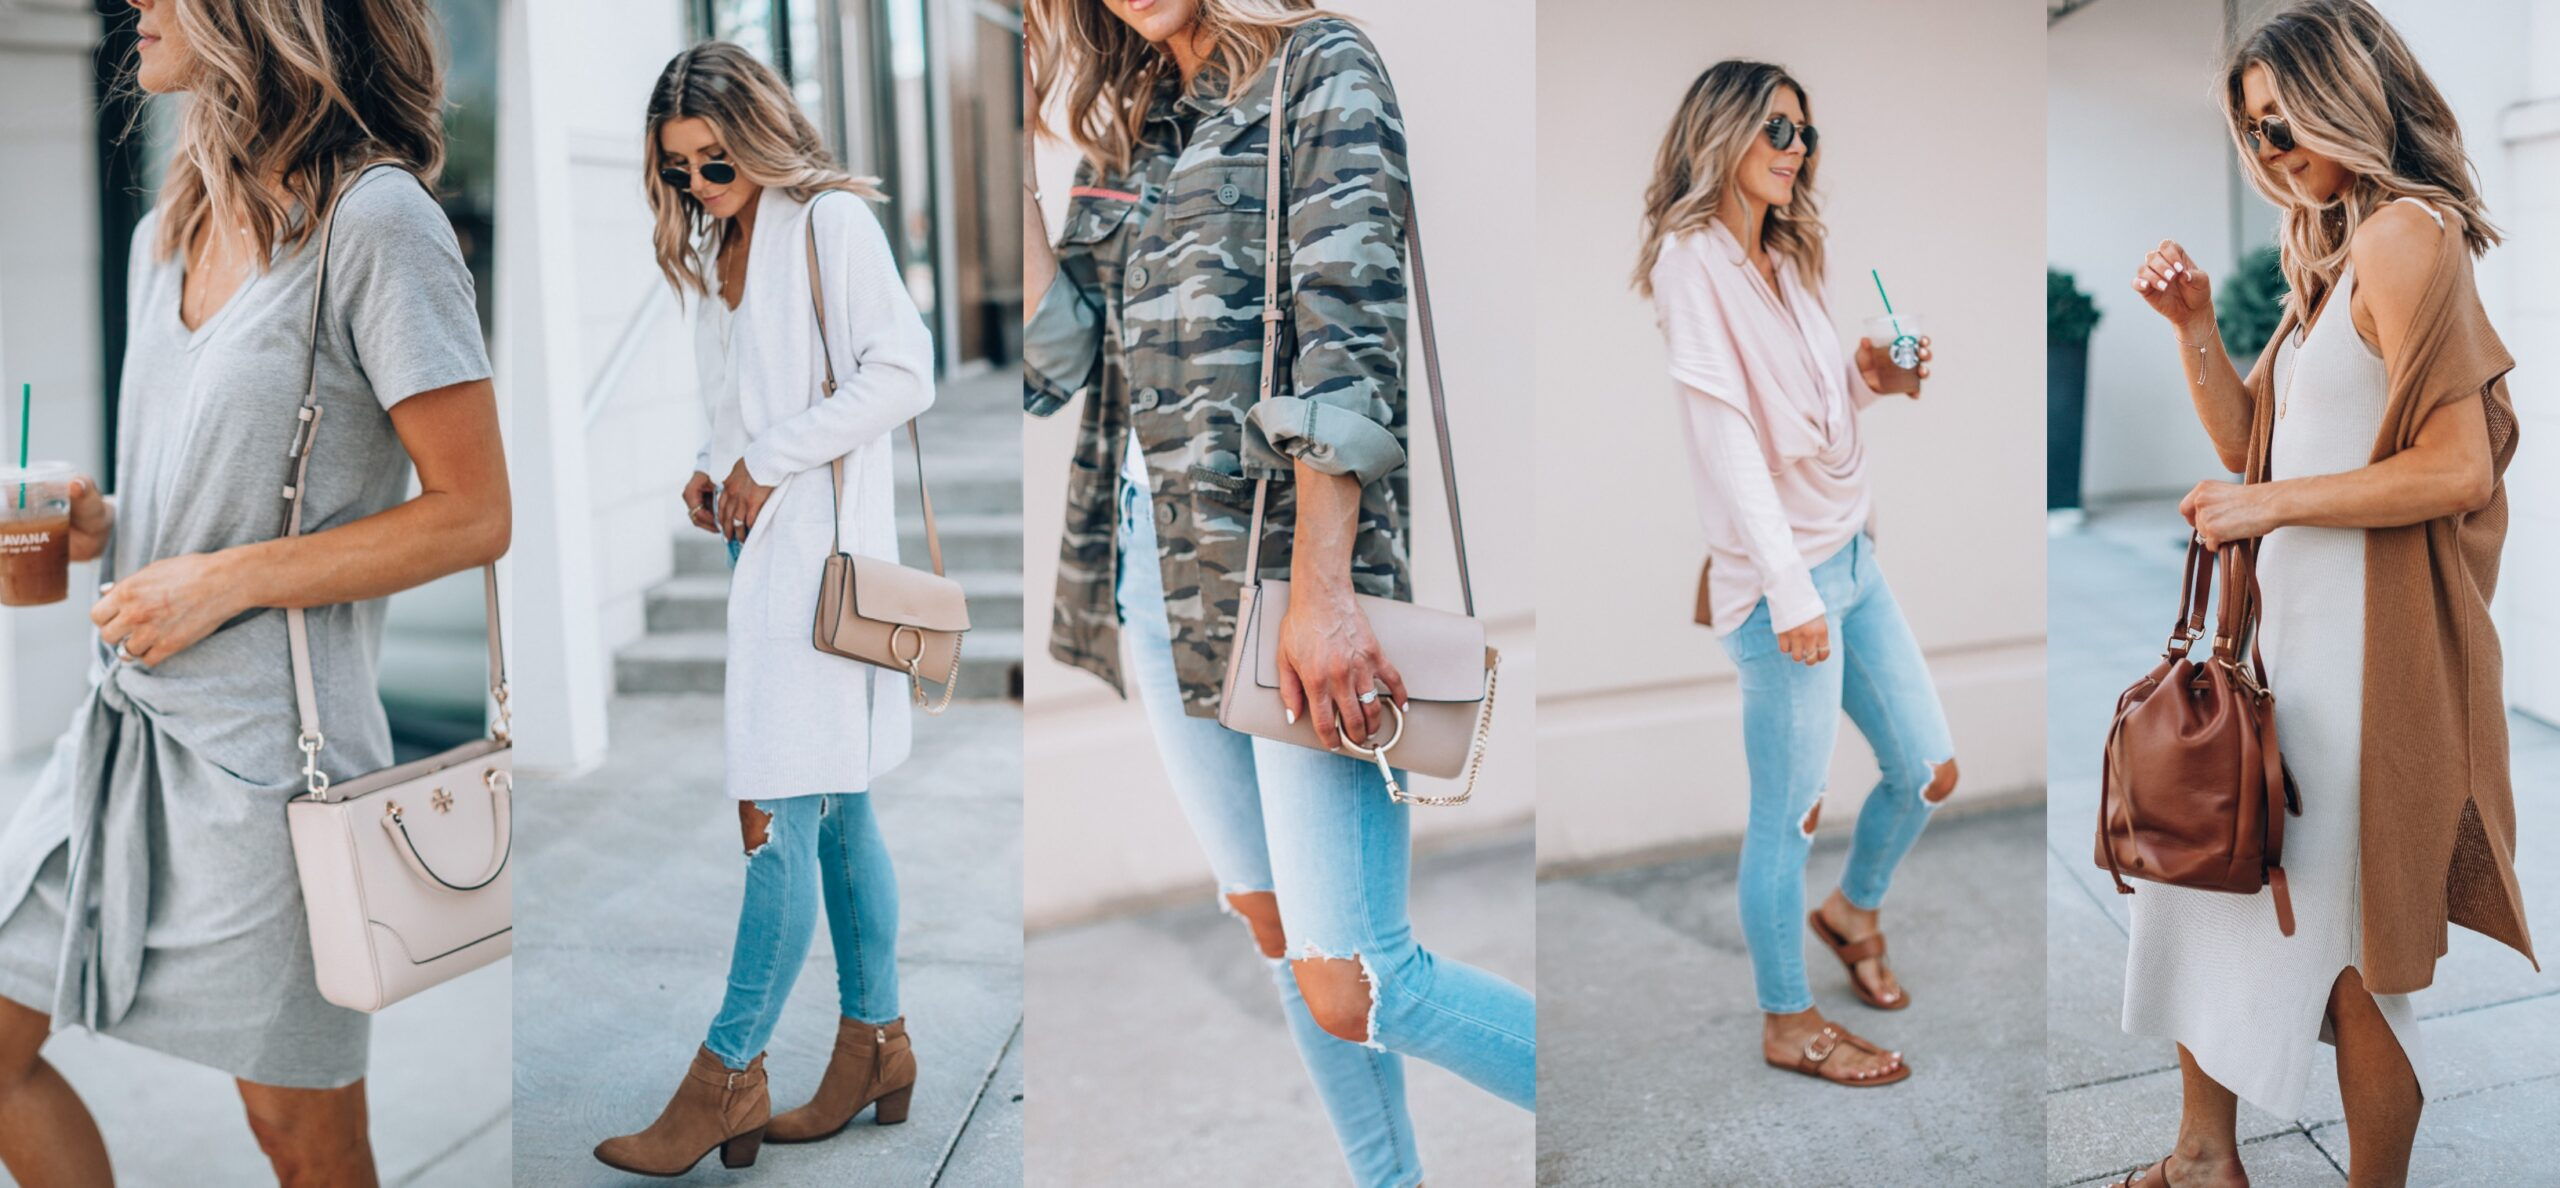 478d6dc7c3e My Top 2018 Nordstrom Anniversary Sale Picks  Outfit Ideas From Summer to  Fall